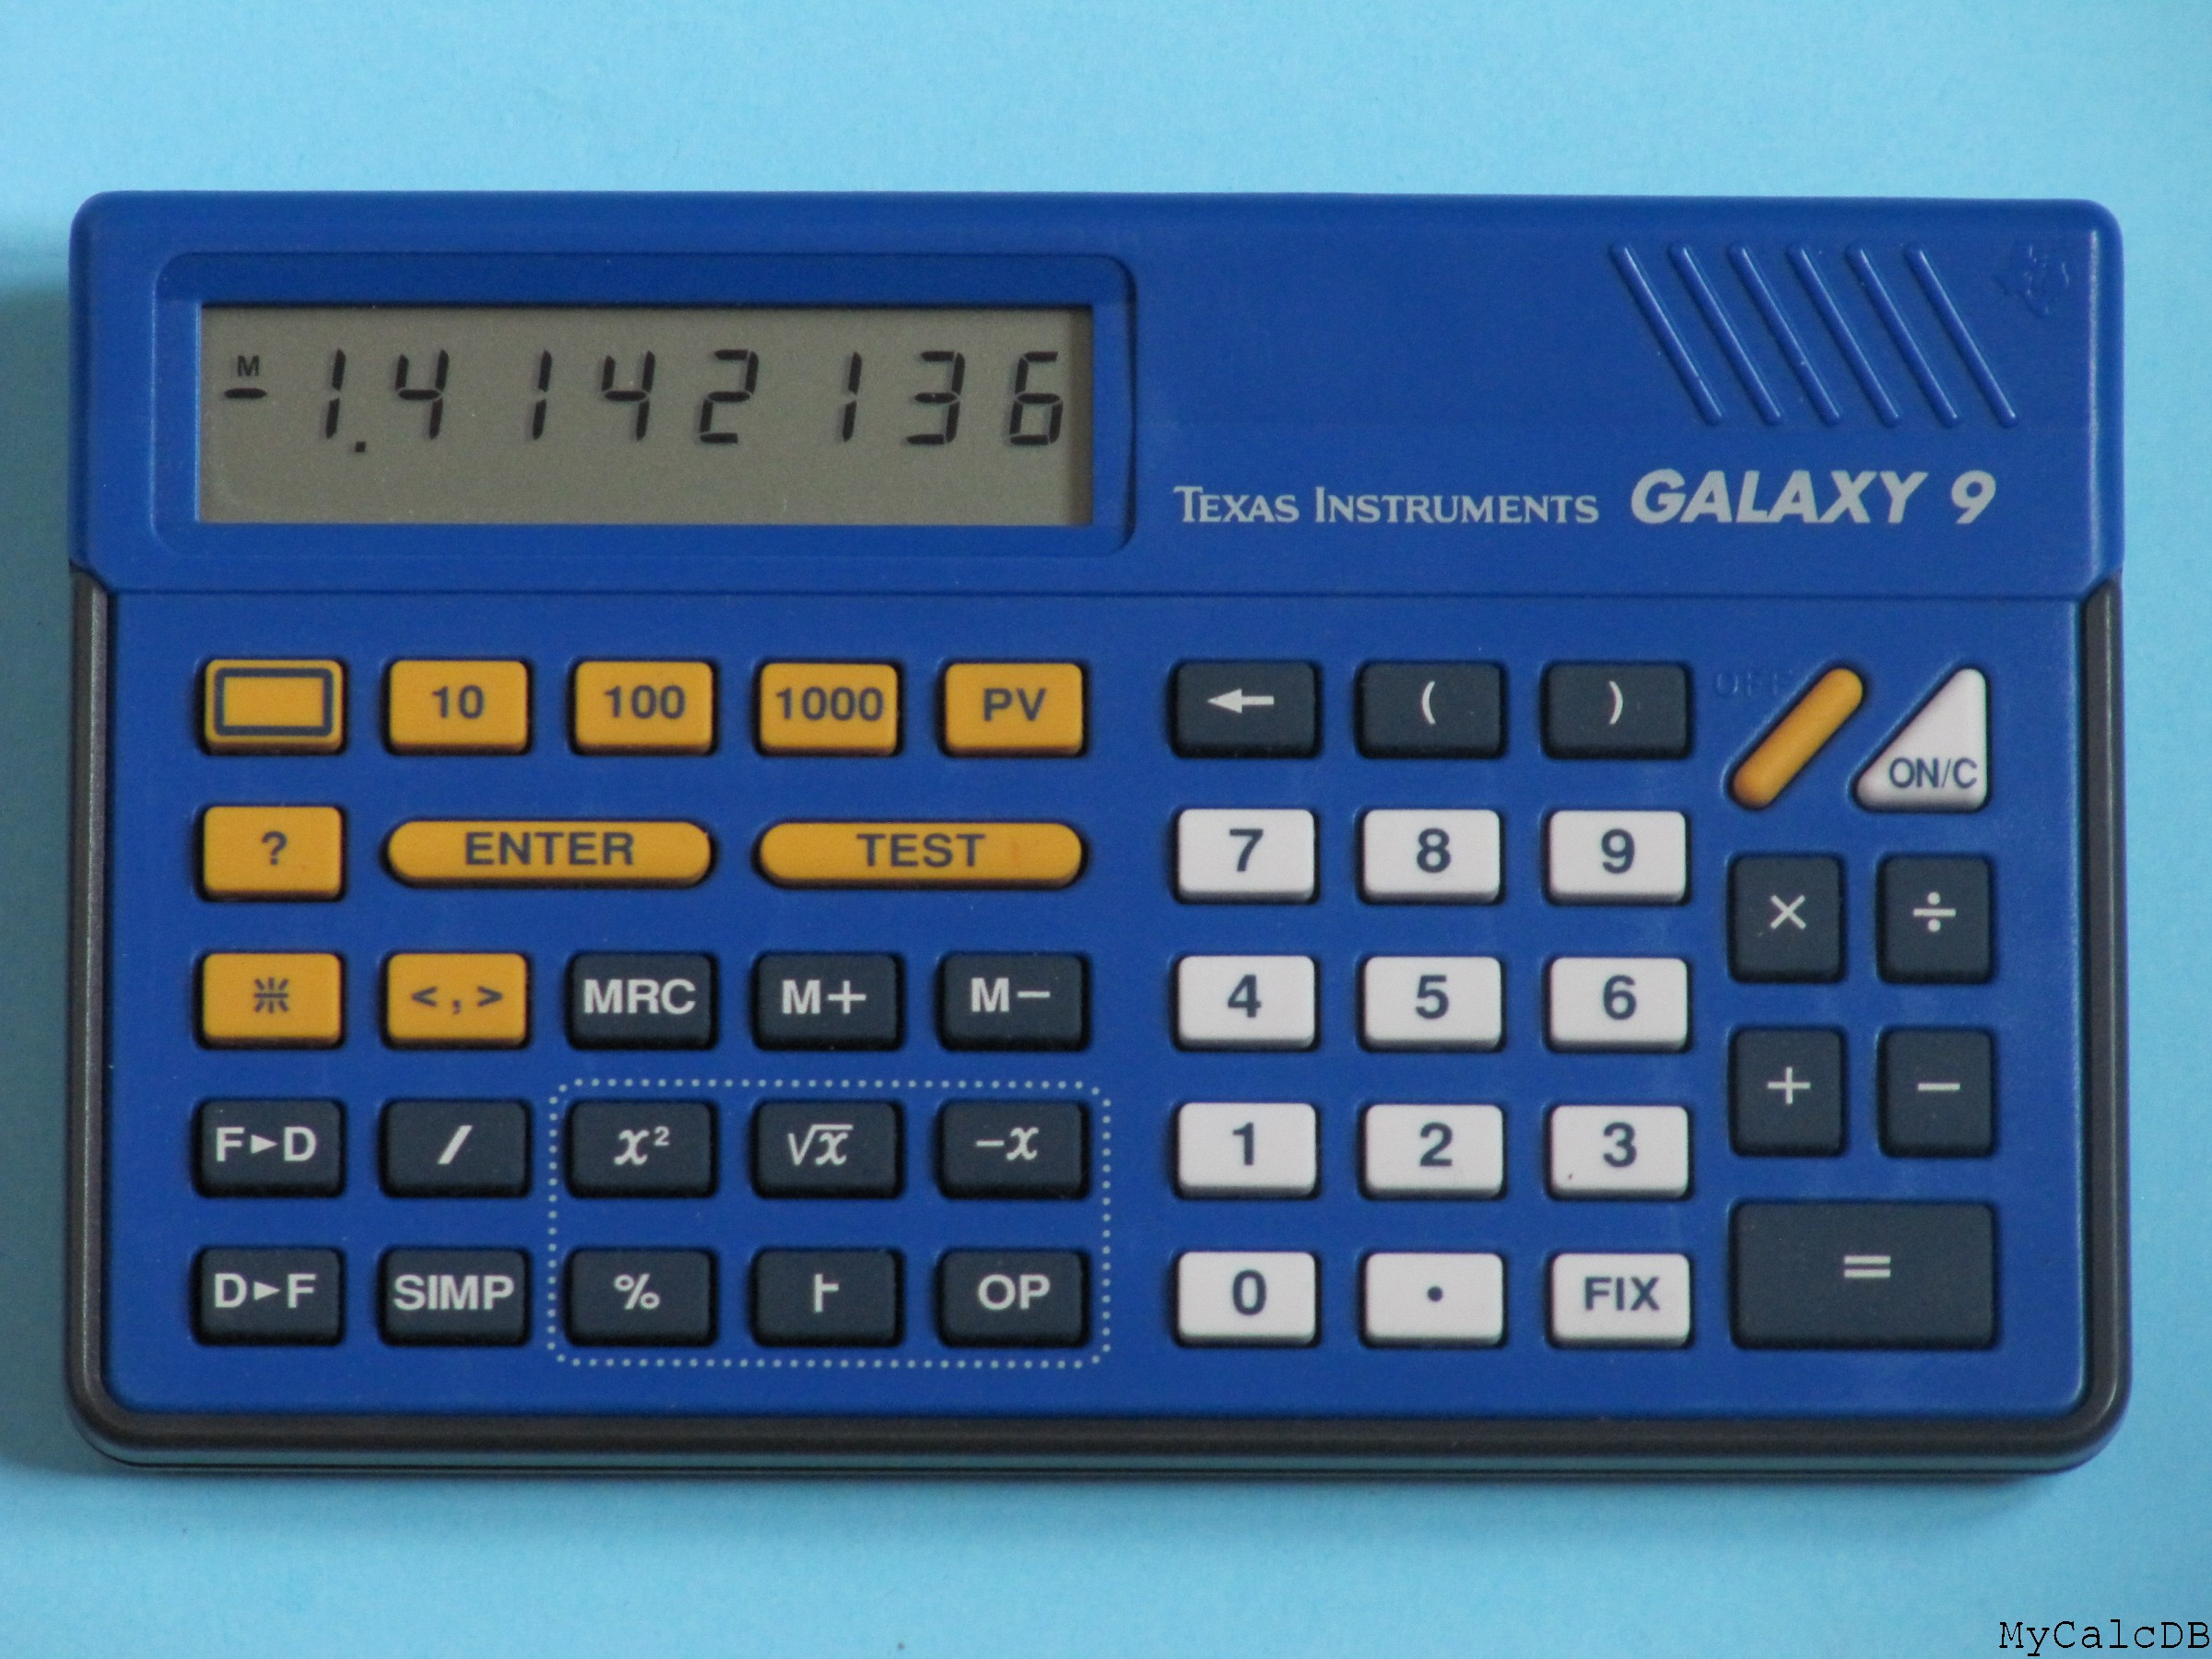 Texas Instruments GALAXY 9